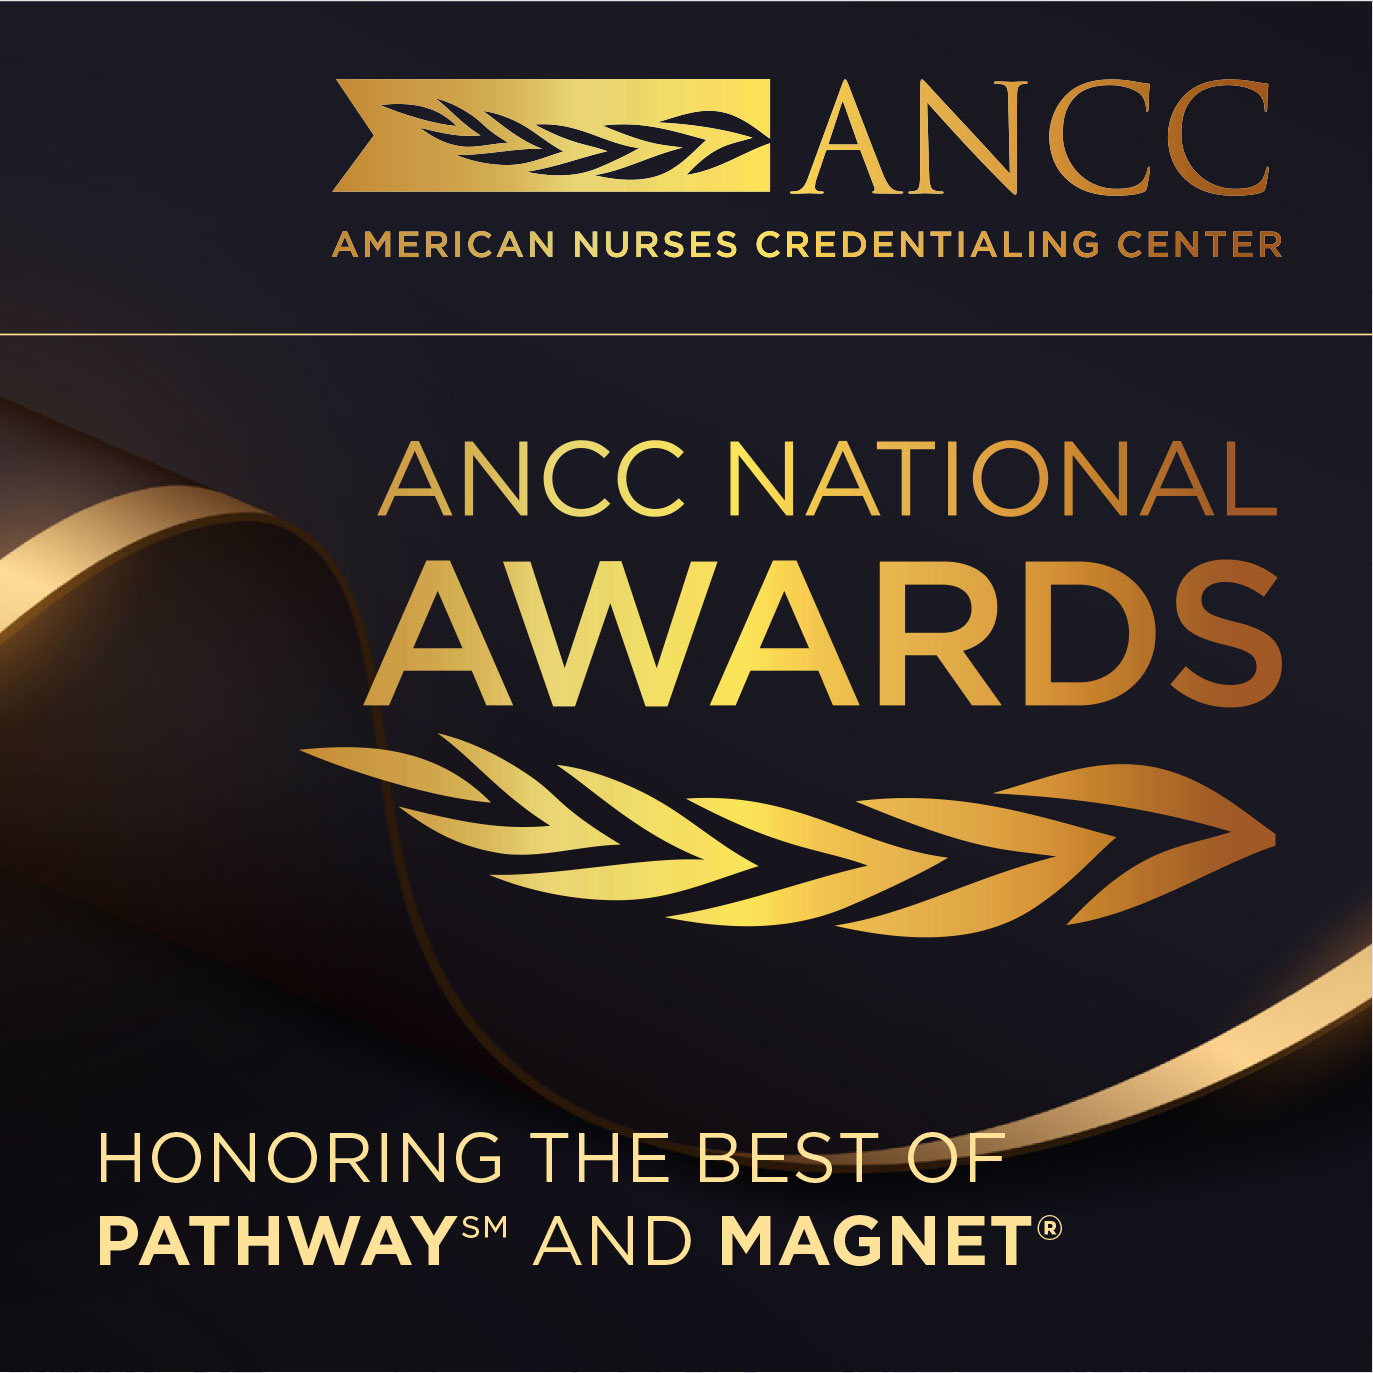 ANCC 2021 NATIONAL AWARDS. Honoring the Best of Pathway and Magnet